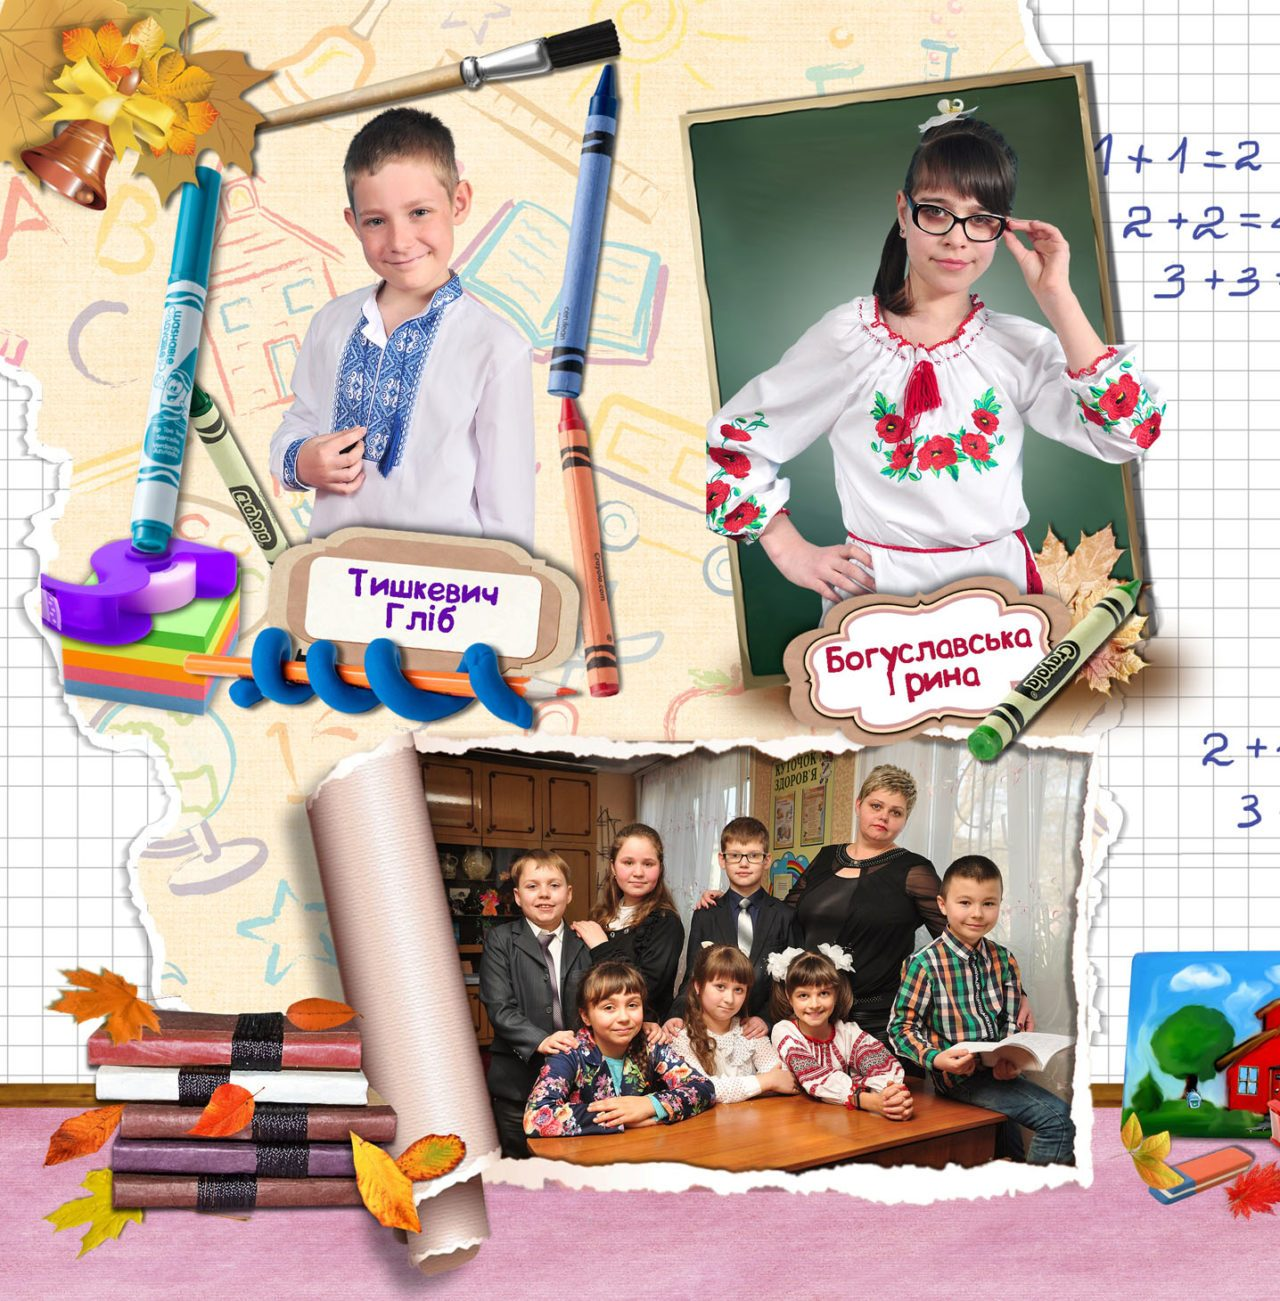 https://school-photo.com.ua/wp-content/uploads/2017/07/06-13-1280x1301.jpg